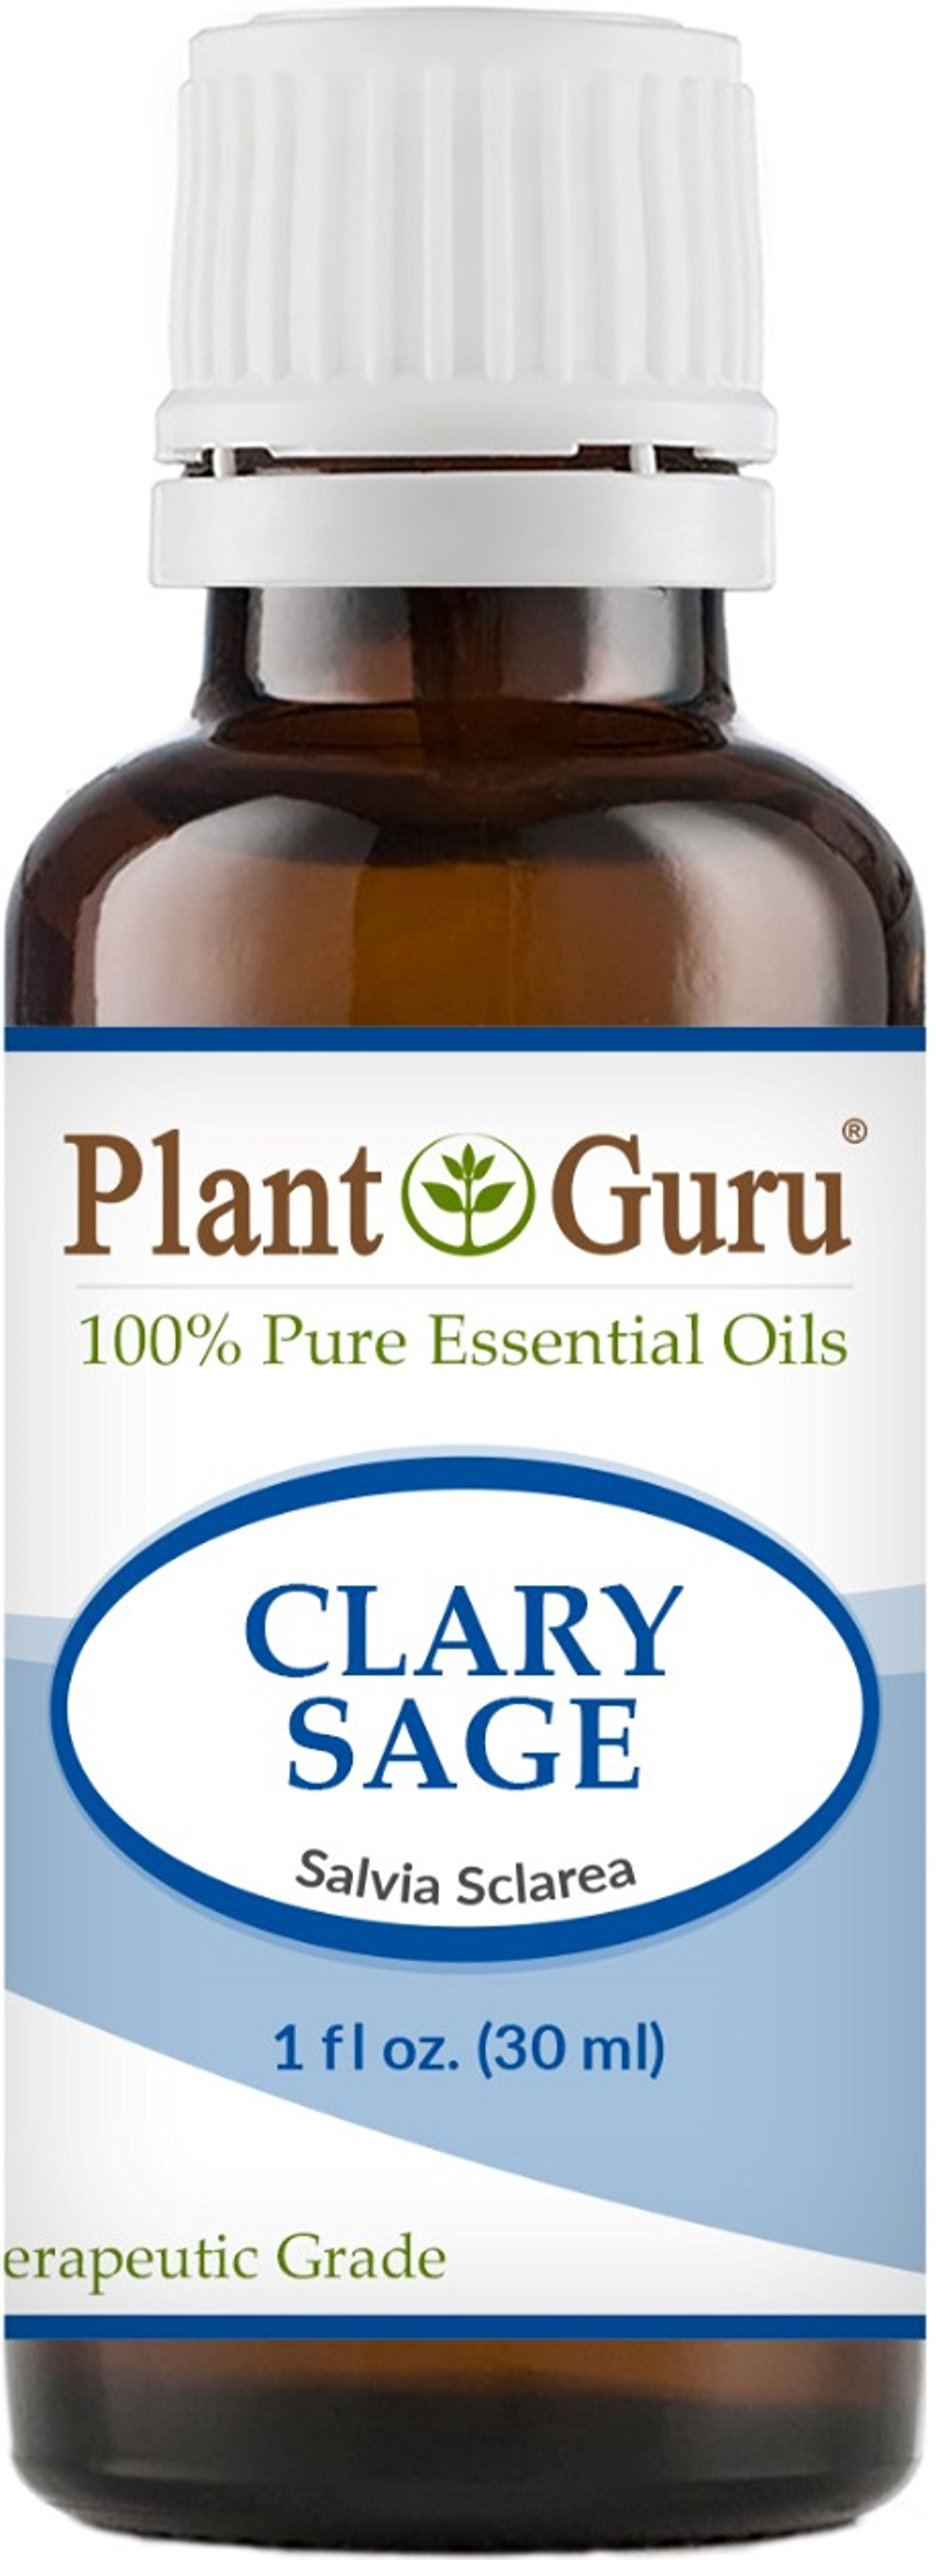 Clary Sage Essential Oil 30 ml. (1 oz.) 100% Pure Undiluted Therapeutic Grade.